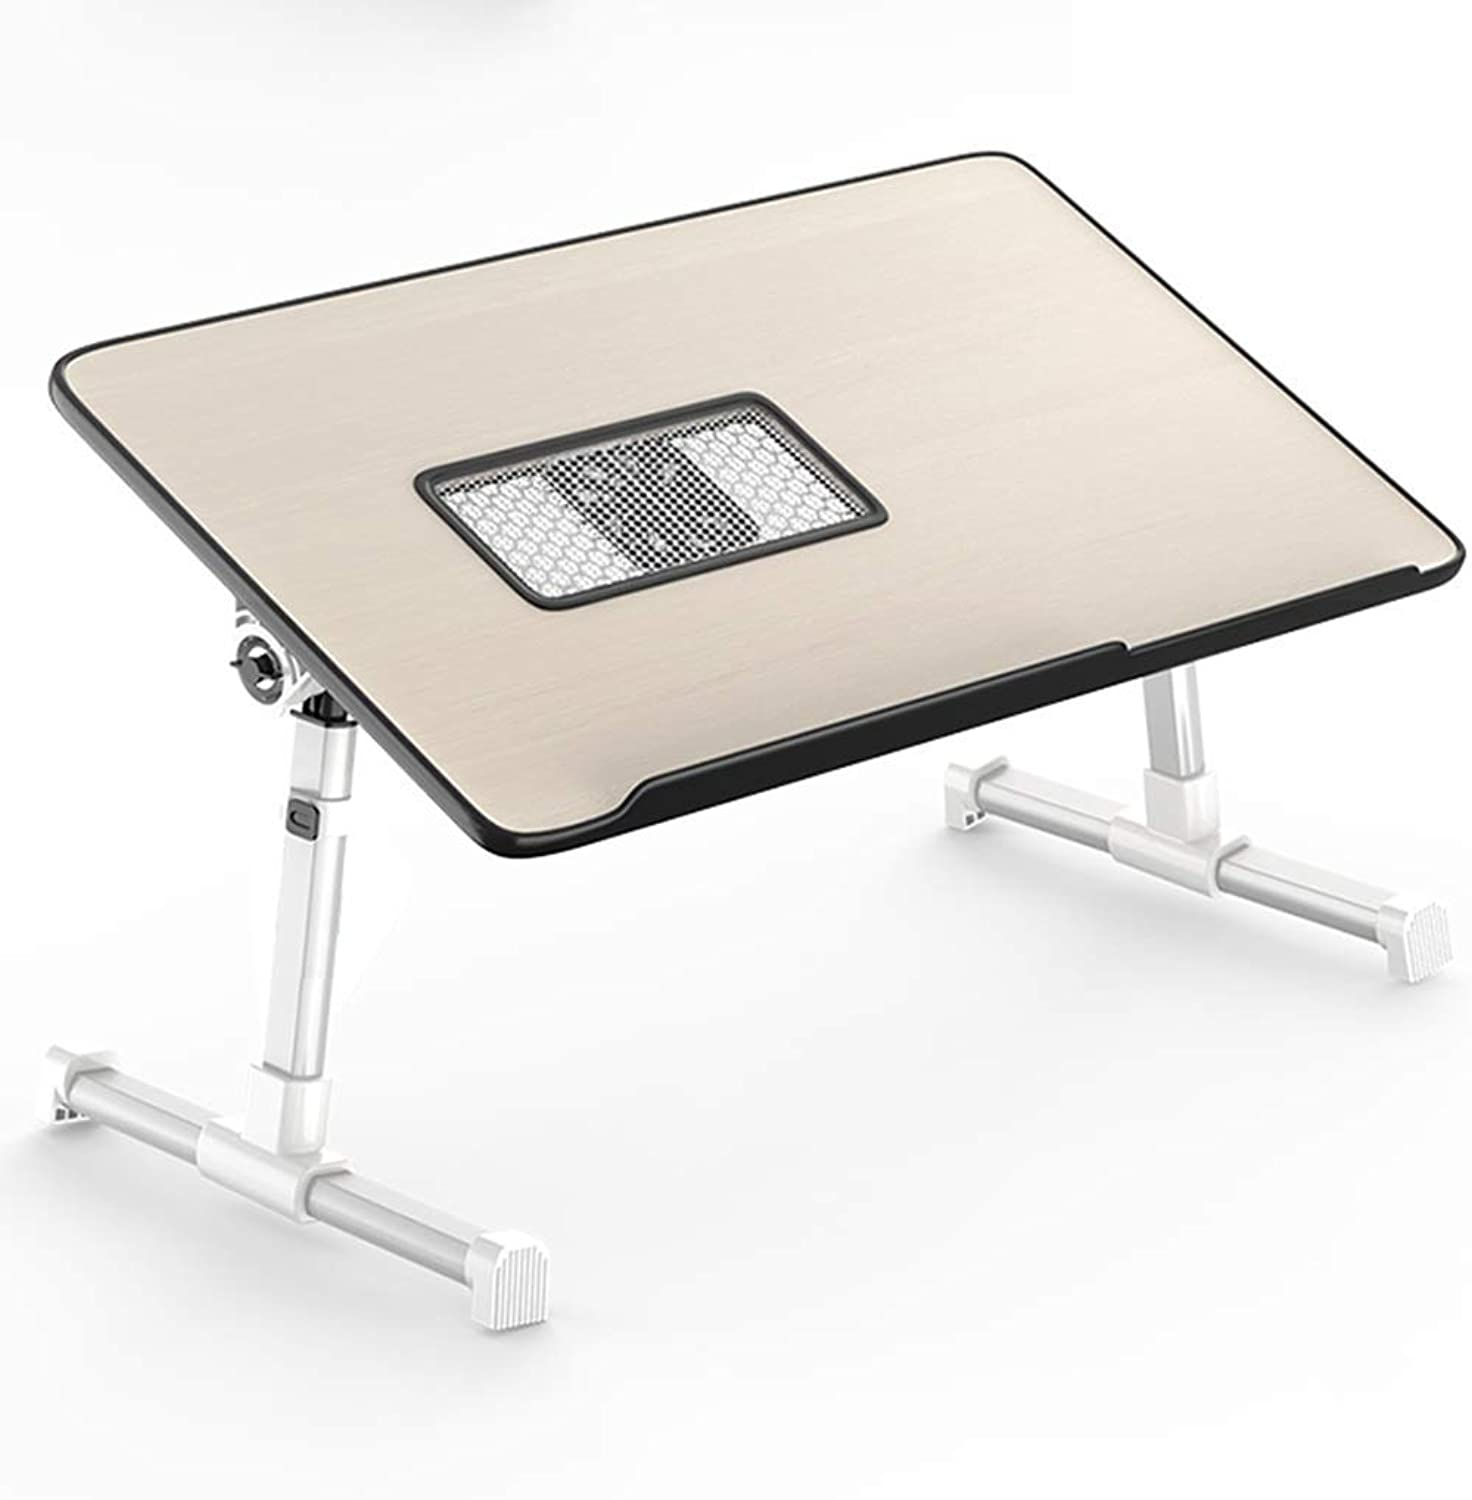 Portable Folding Table Office Simple Desk Computer Laptop Desk Bed Desk Folding Student Dormitory Small Lazy Small Table Multi-Size Optional (Size   52  30  22cm)